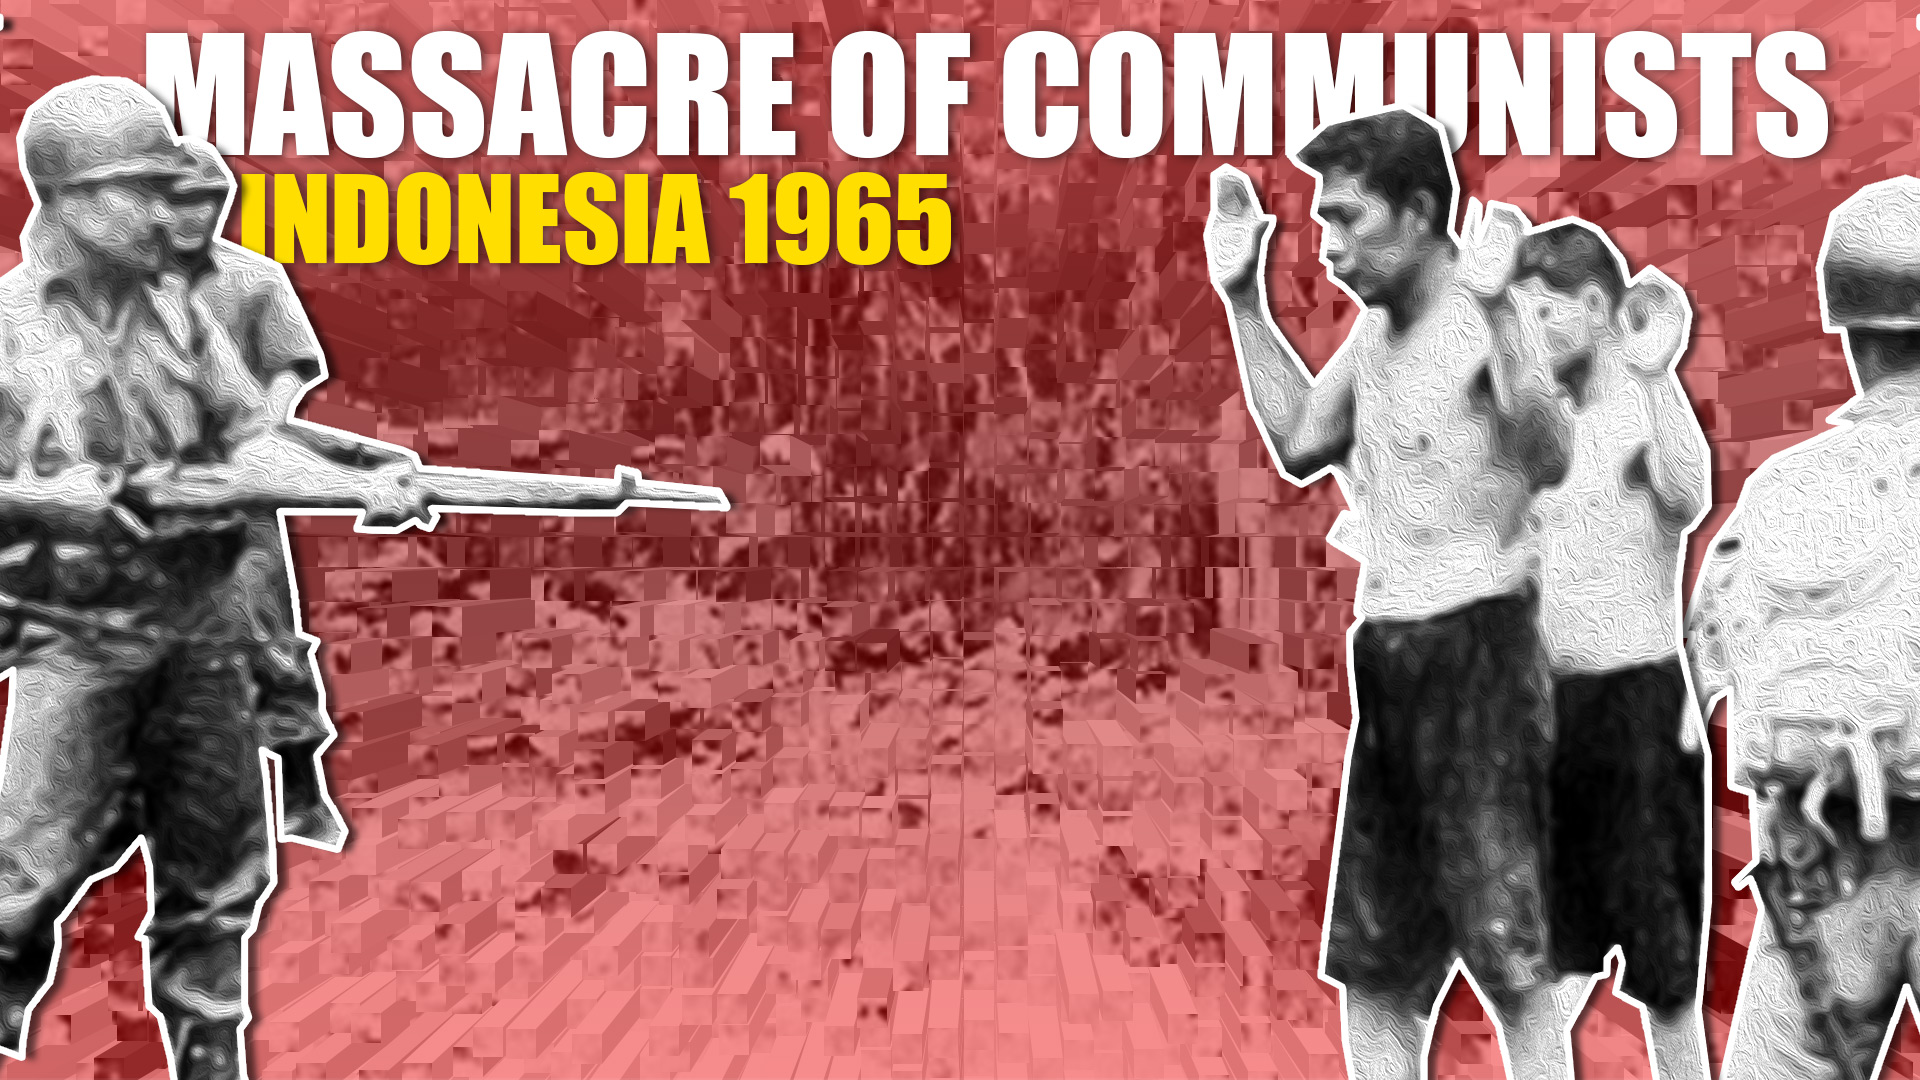 Indonesia 1965_MASSACRE OF COMMUNISTS